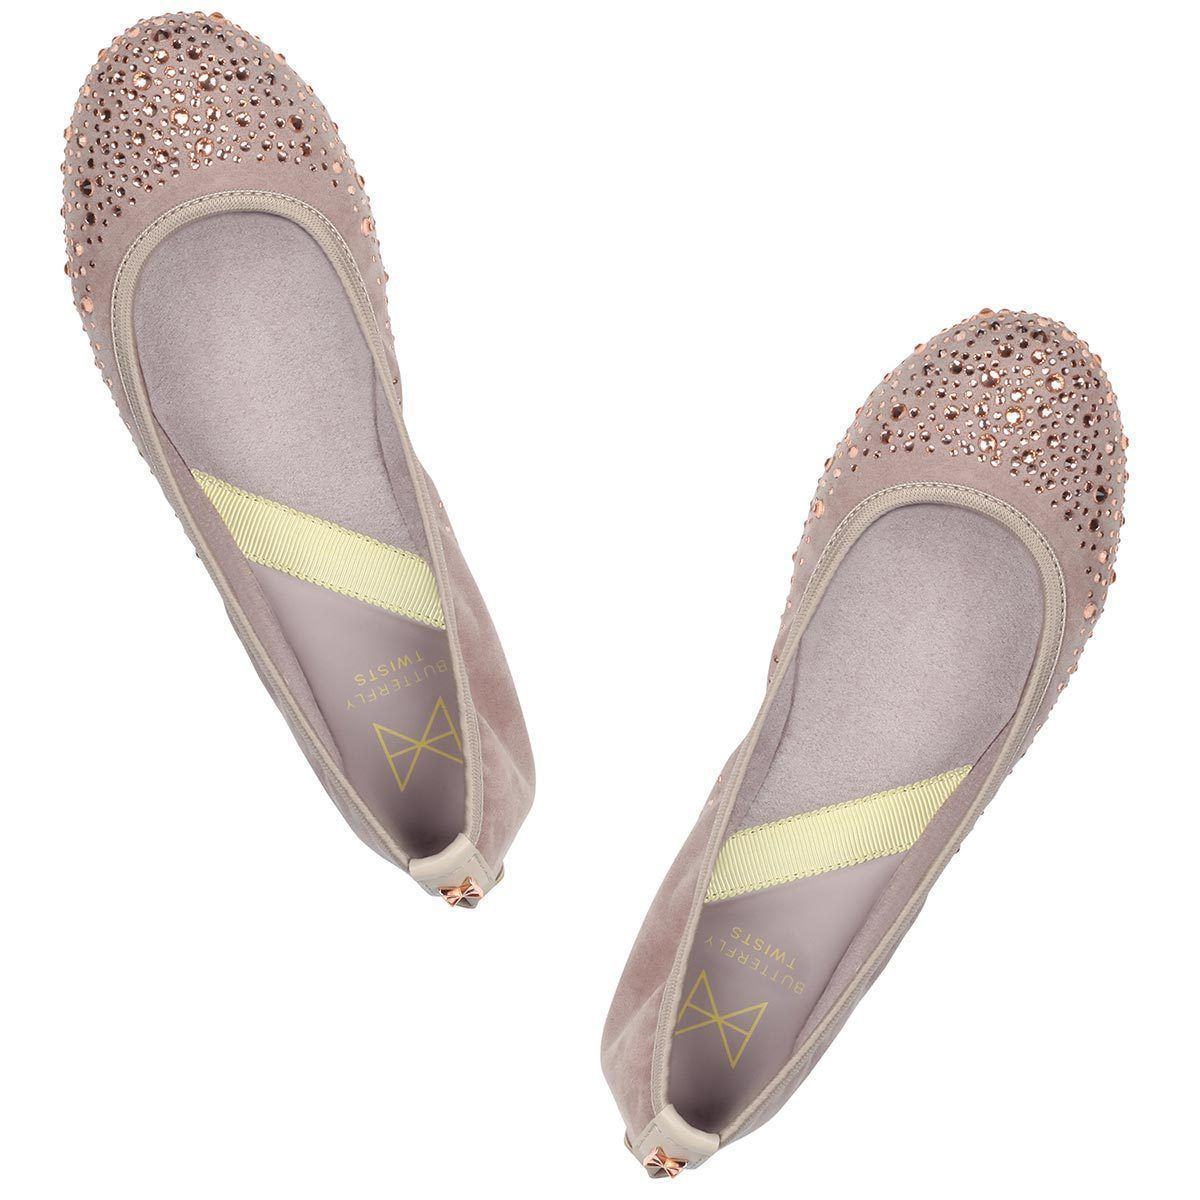 Office party style made easy with CHRISTINA. Pairing faux nude suede with sparkling toe crystals, this style will take you from work-to-play. A classic round toe silhouette Soft faux nude suede sprinkled with gemstones for elegance Soft, comfortable faux suede lining Cushioning memory foam insoles for added comfort Folding Twist Tech Technology Flexible rubber sole: folding shoe We deliver to over 50 countries worldwide. to see which countries we deliver to please visit outåÊFAQåÊsection. We